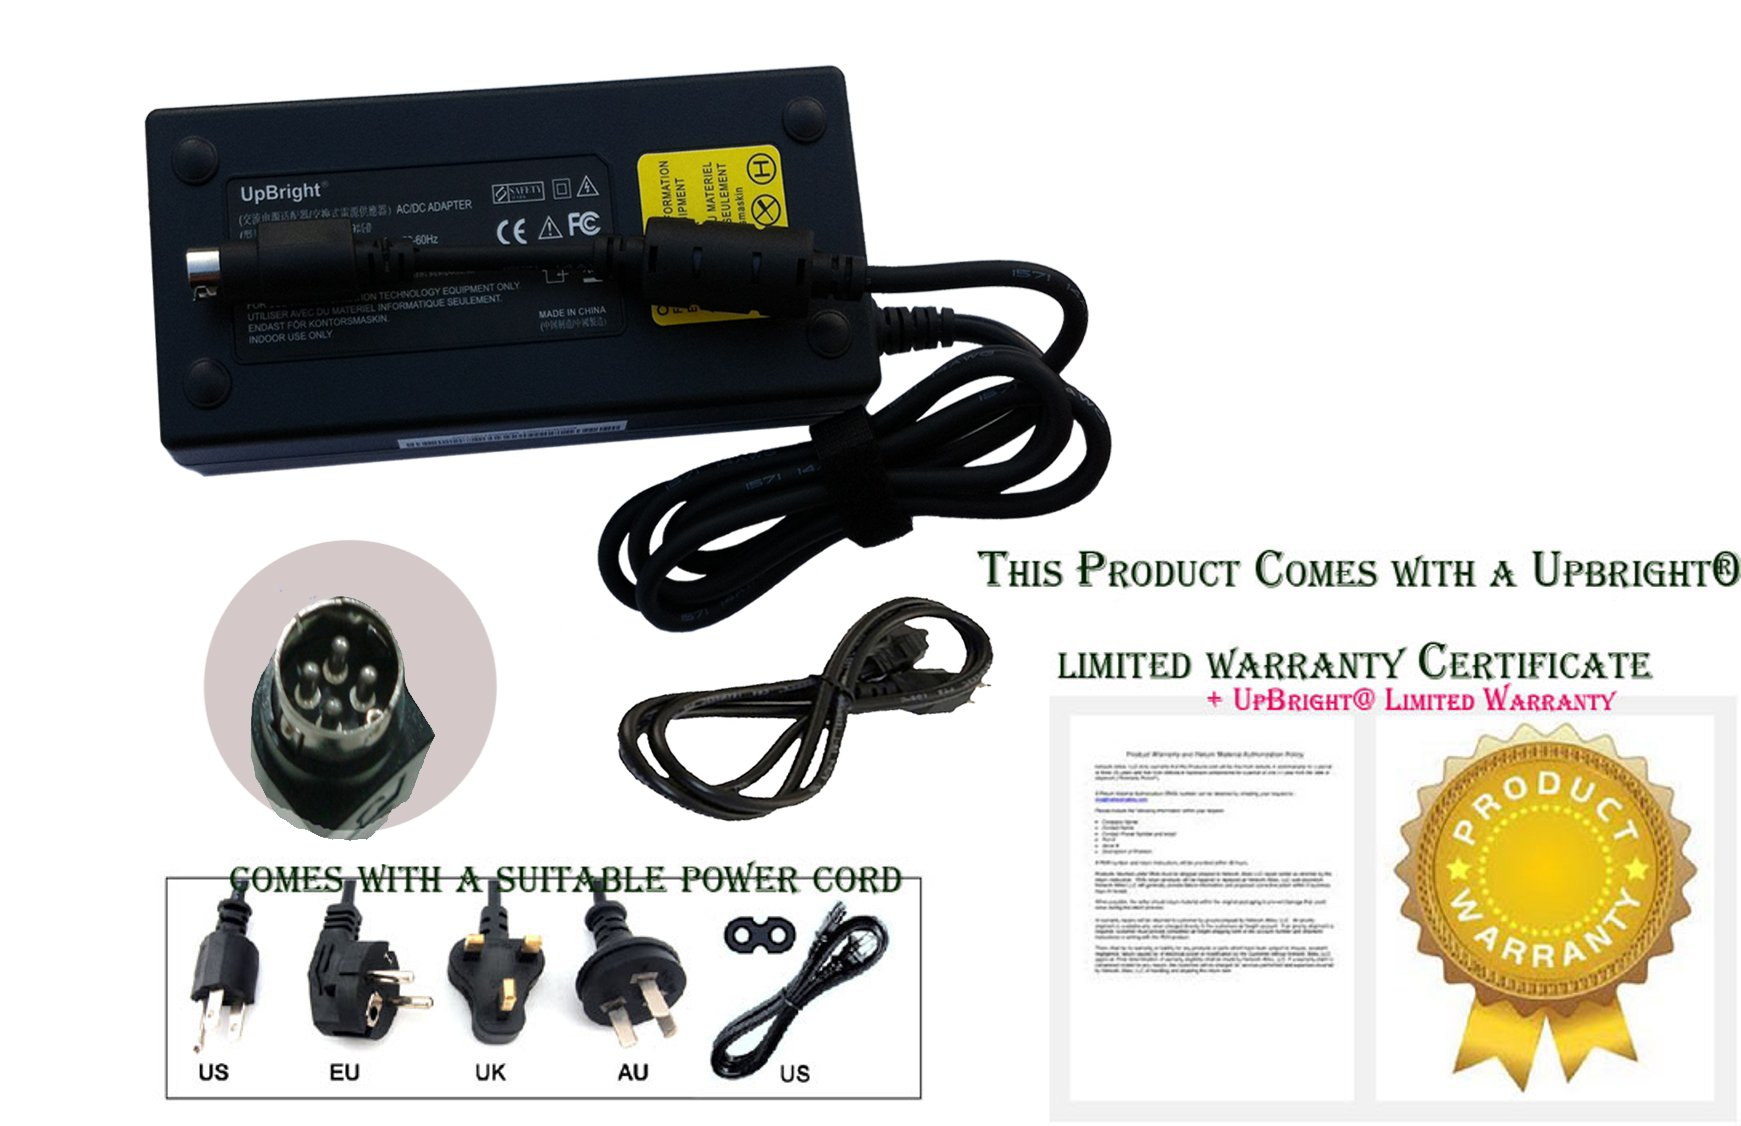 UpBright New 4-Pin DIN 48V AC / DC Adapter For Linksys Cisco Systems SG300-10P SG300-10PP SG300PP Small Business SRW2008P-K9-NA Gigabit PoE Managed Switch 48VDC 48-54V Power Supply Cord Charger PSU